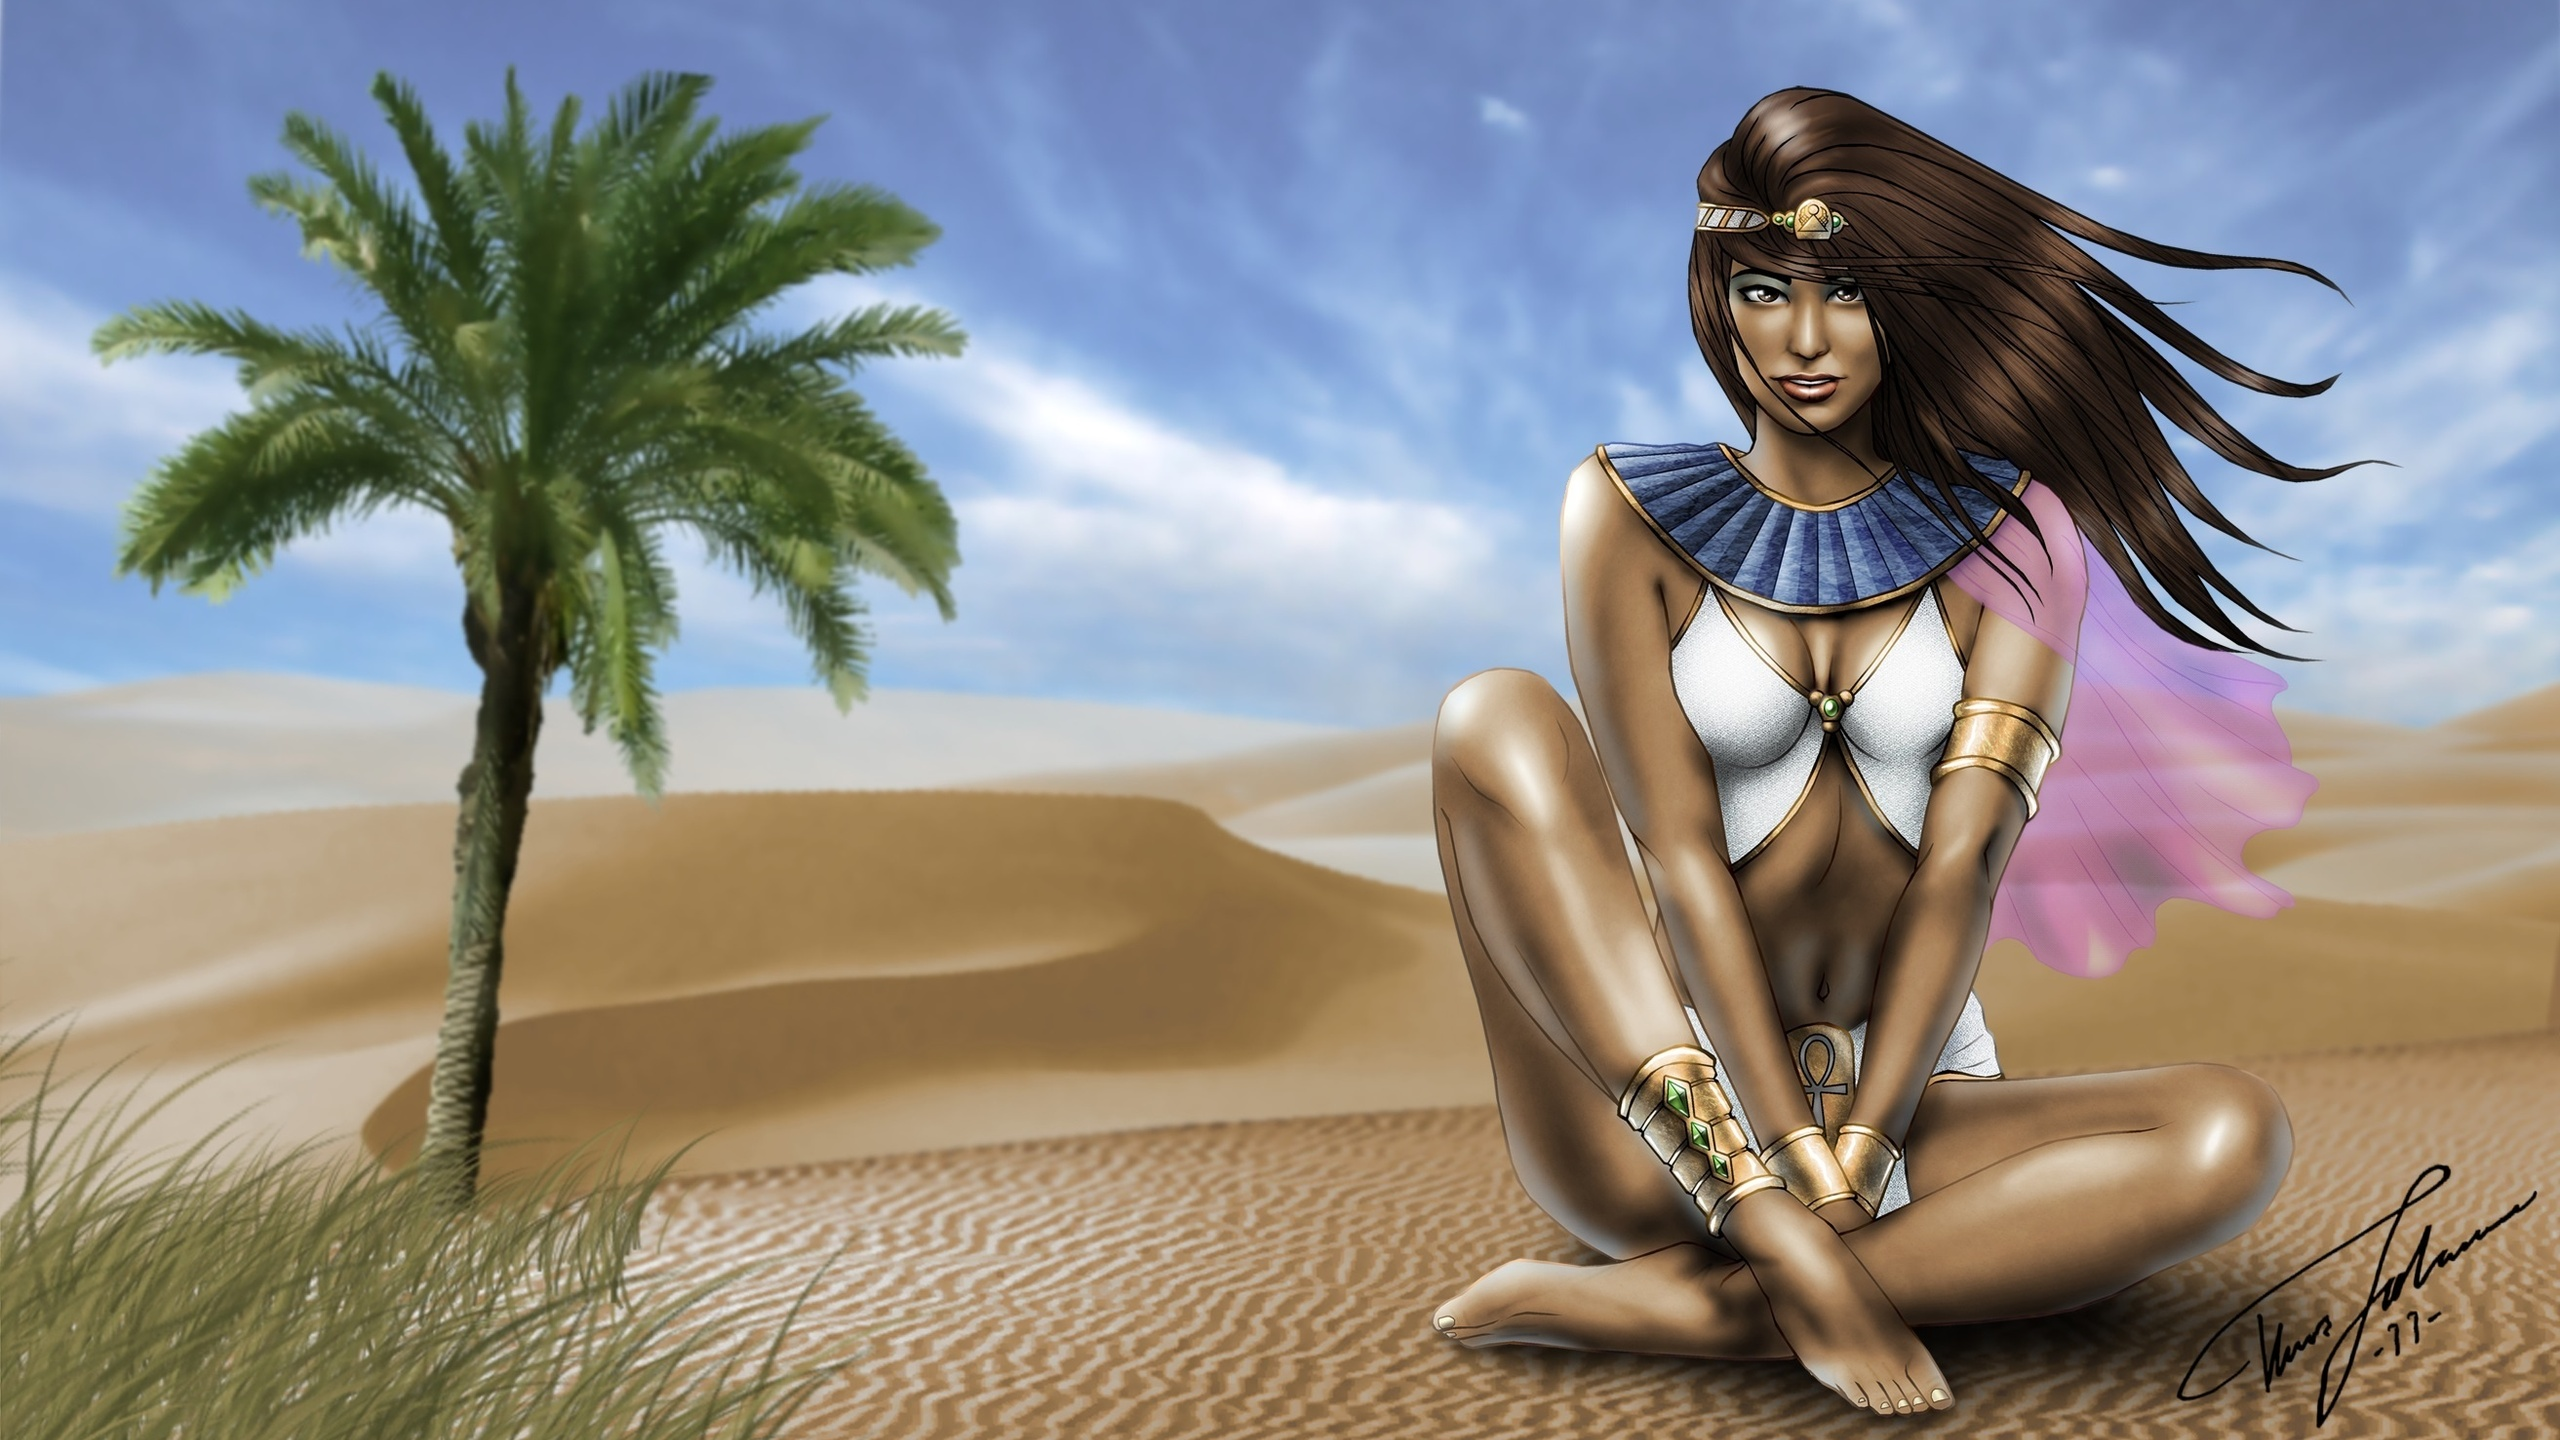 3d cartoonsex pictures exposed images